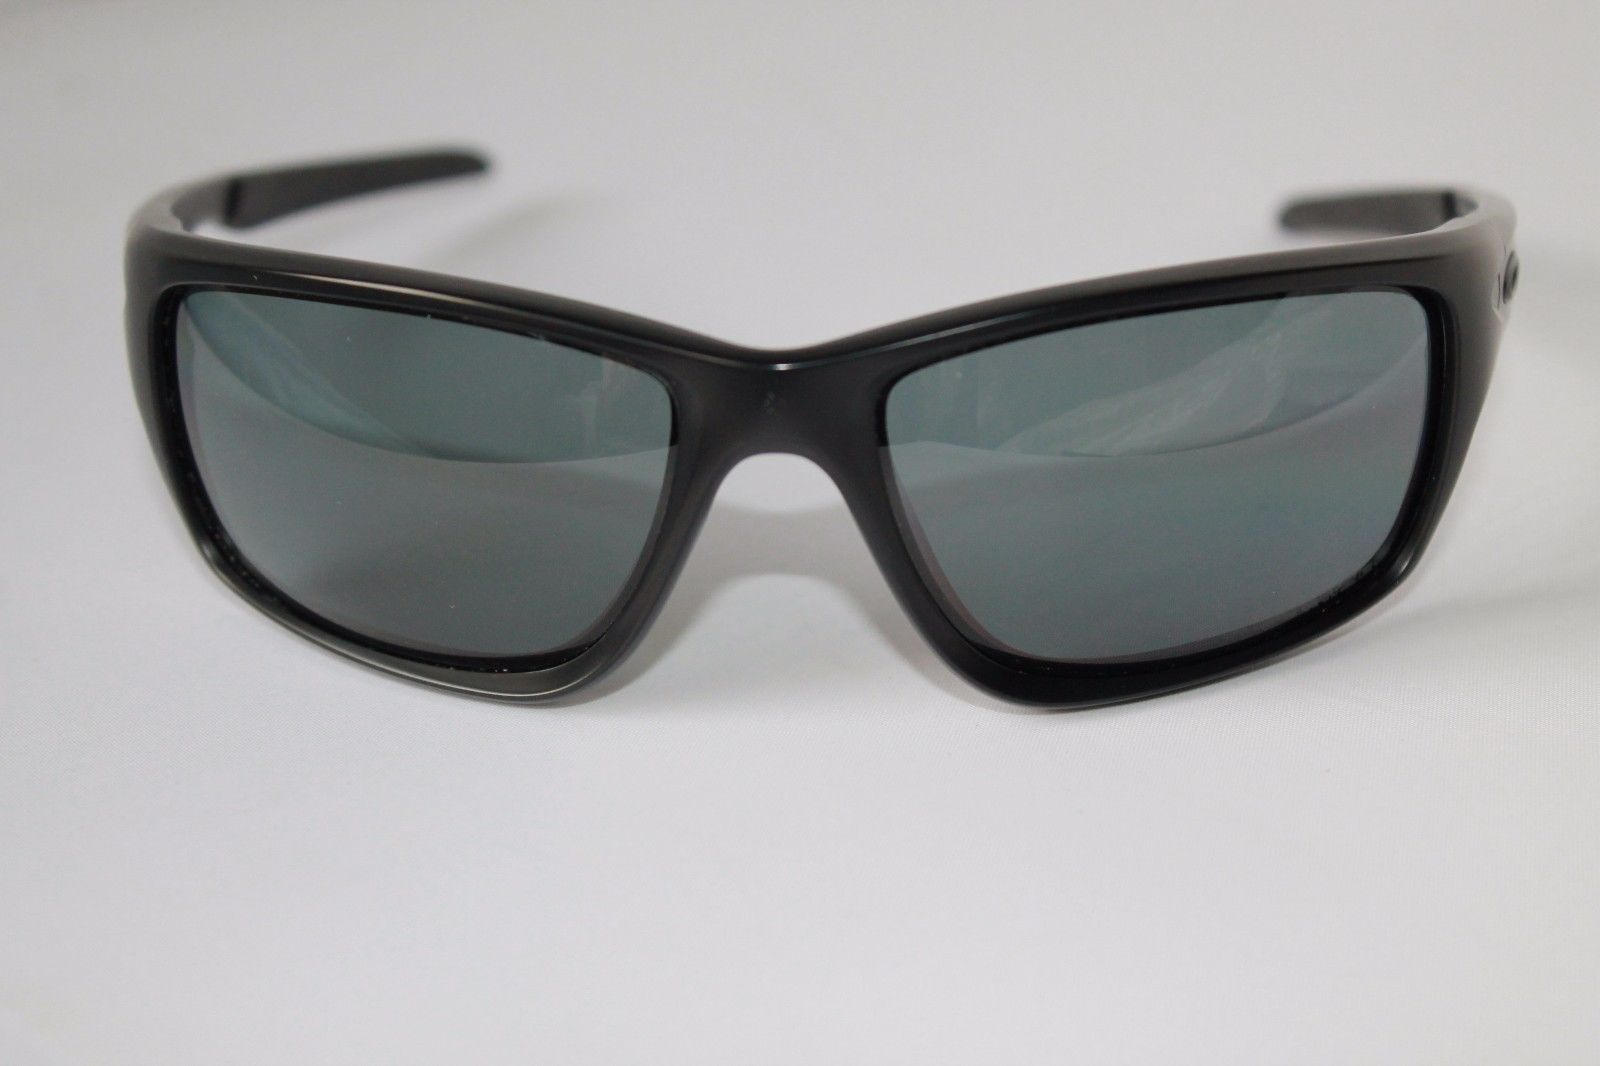 8b872e69db1 Oakley Polarized Sunglasses OO9225-11 and 50 similar items. 57